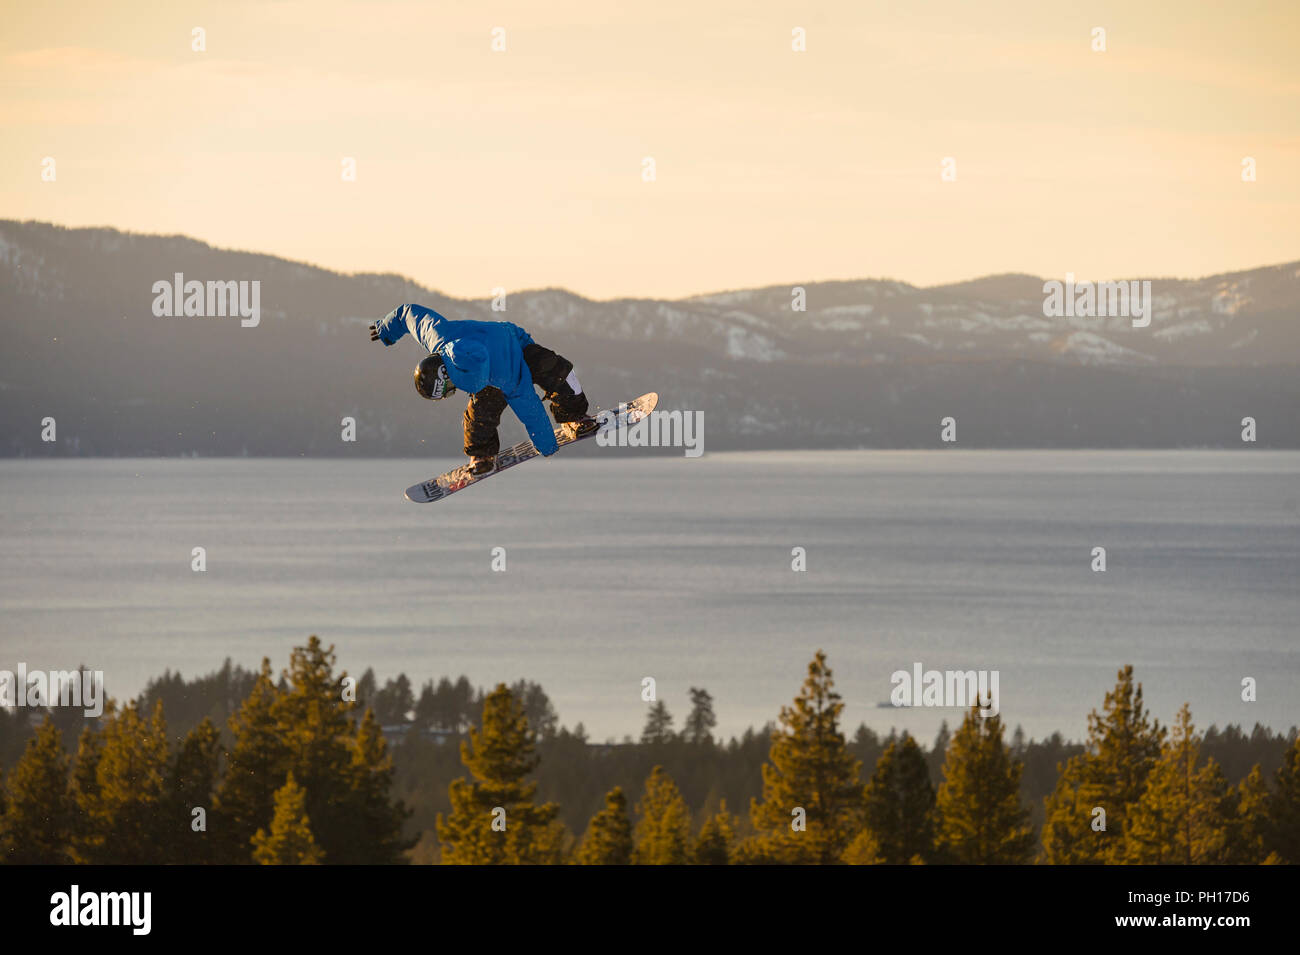 Big Air snowboard competición en Heavenly Valley Ski Resort en South Lake Tahoe, California, América del Norte Imagen De Stock